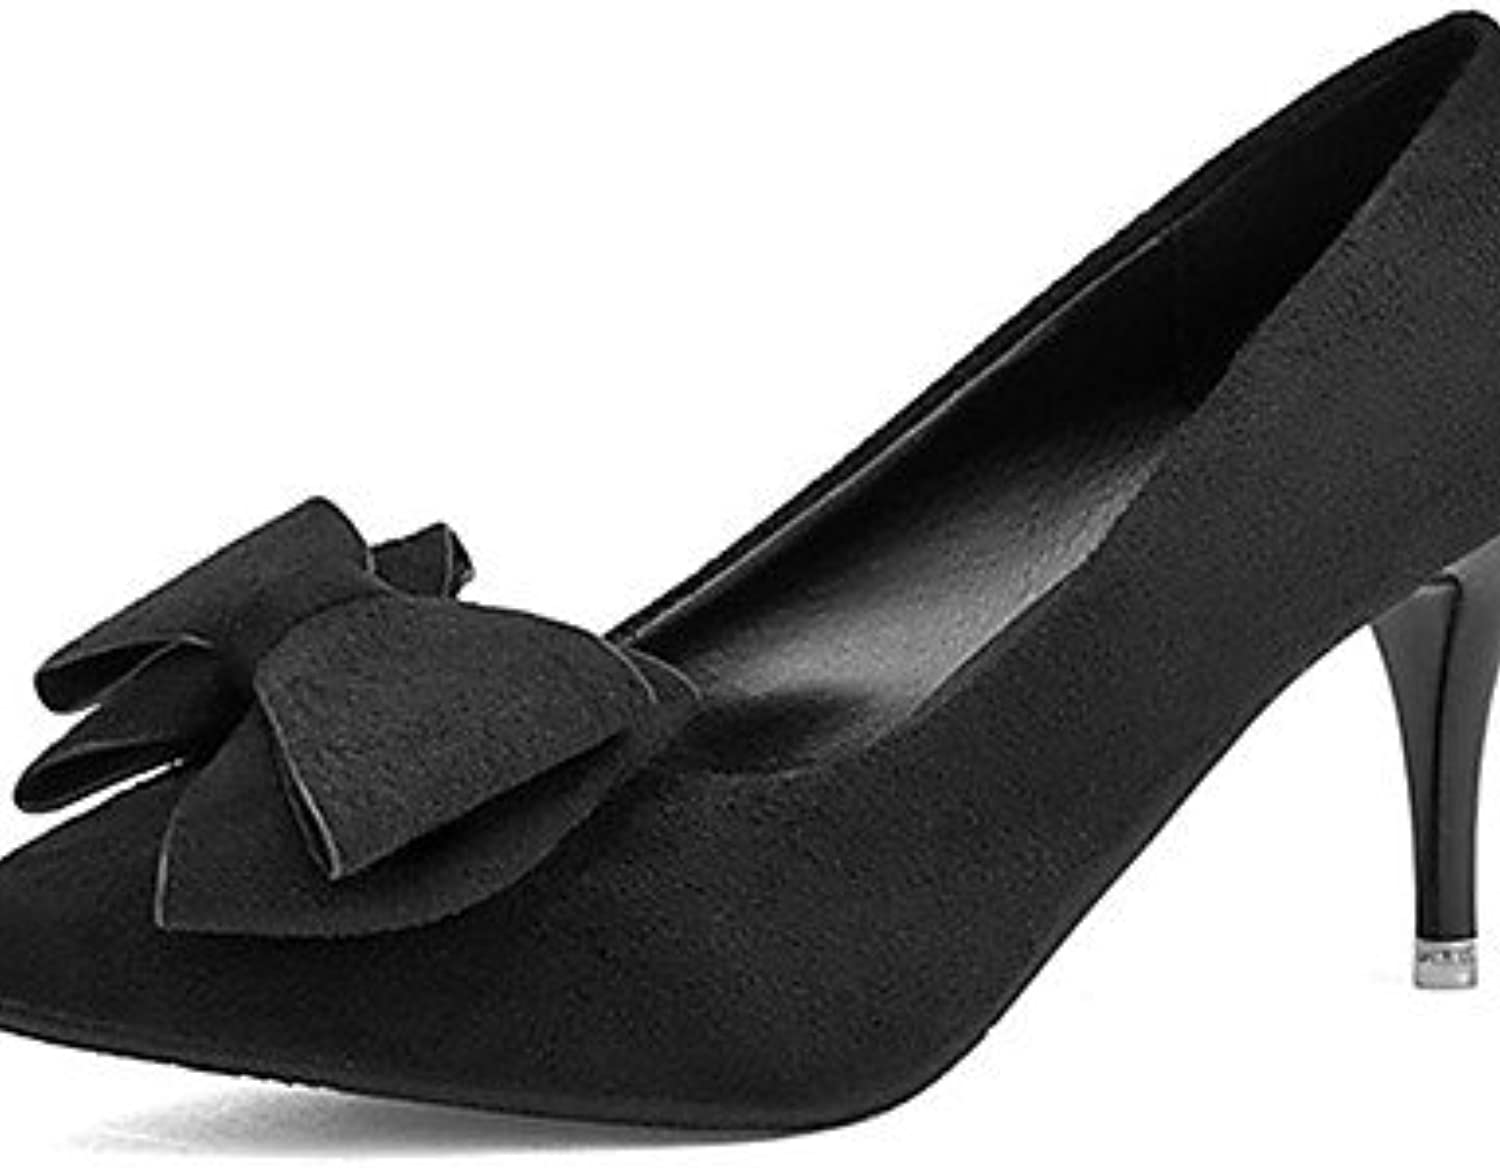 ZQ Zapatos de mujer-Tac¨®n Stiletto-Tacones-Tacones-Casual-Vell¨®n-Negro / Bermell¨®n / Verde Oscuro , black-us8...